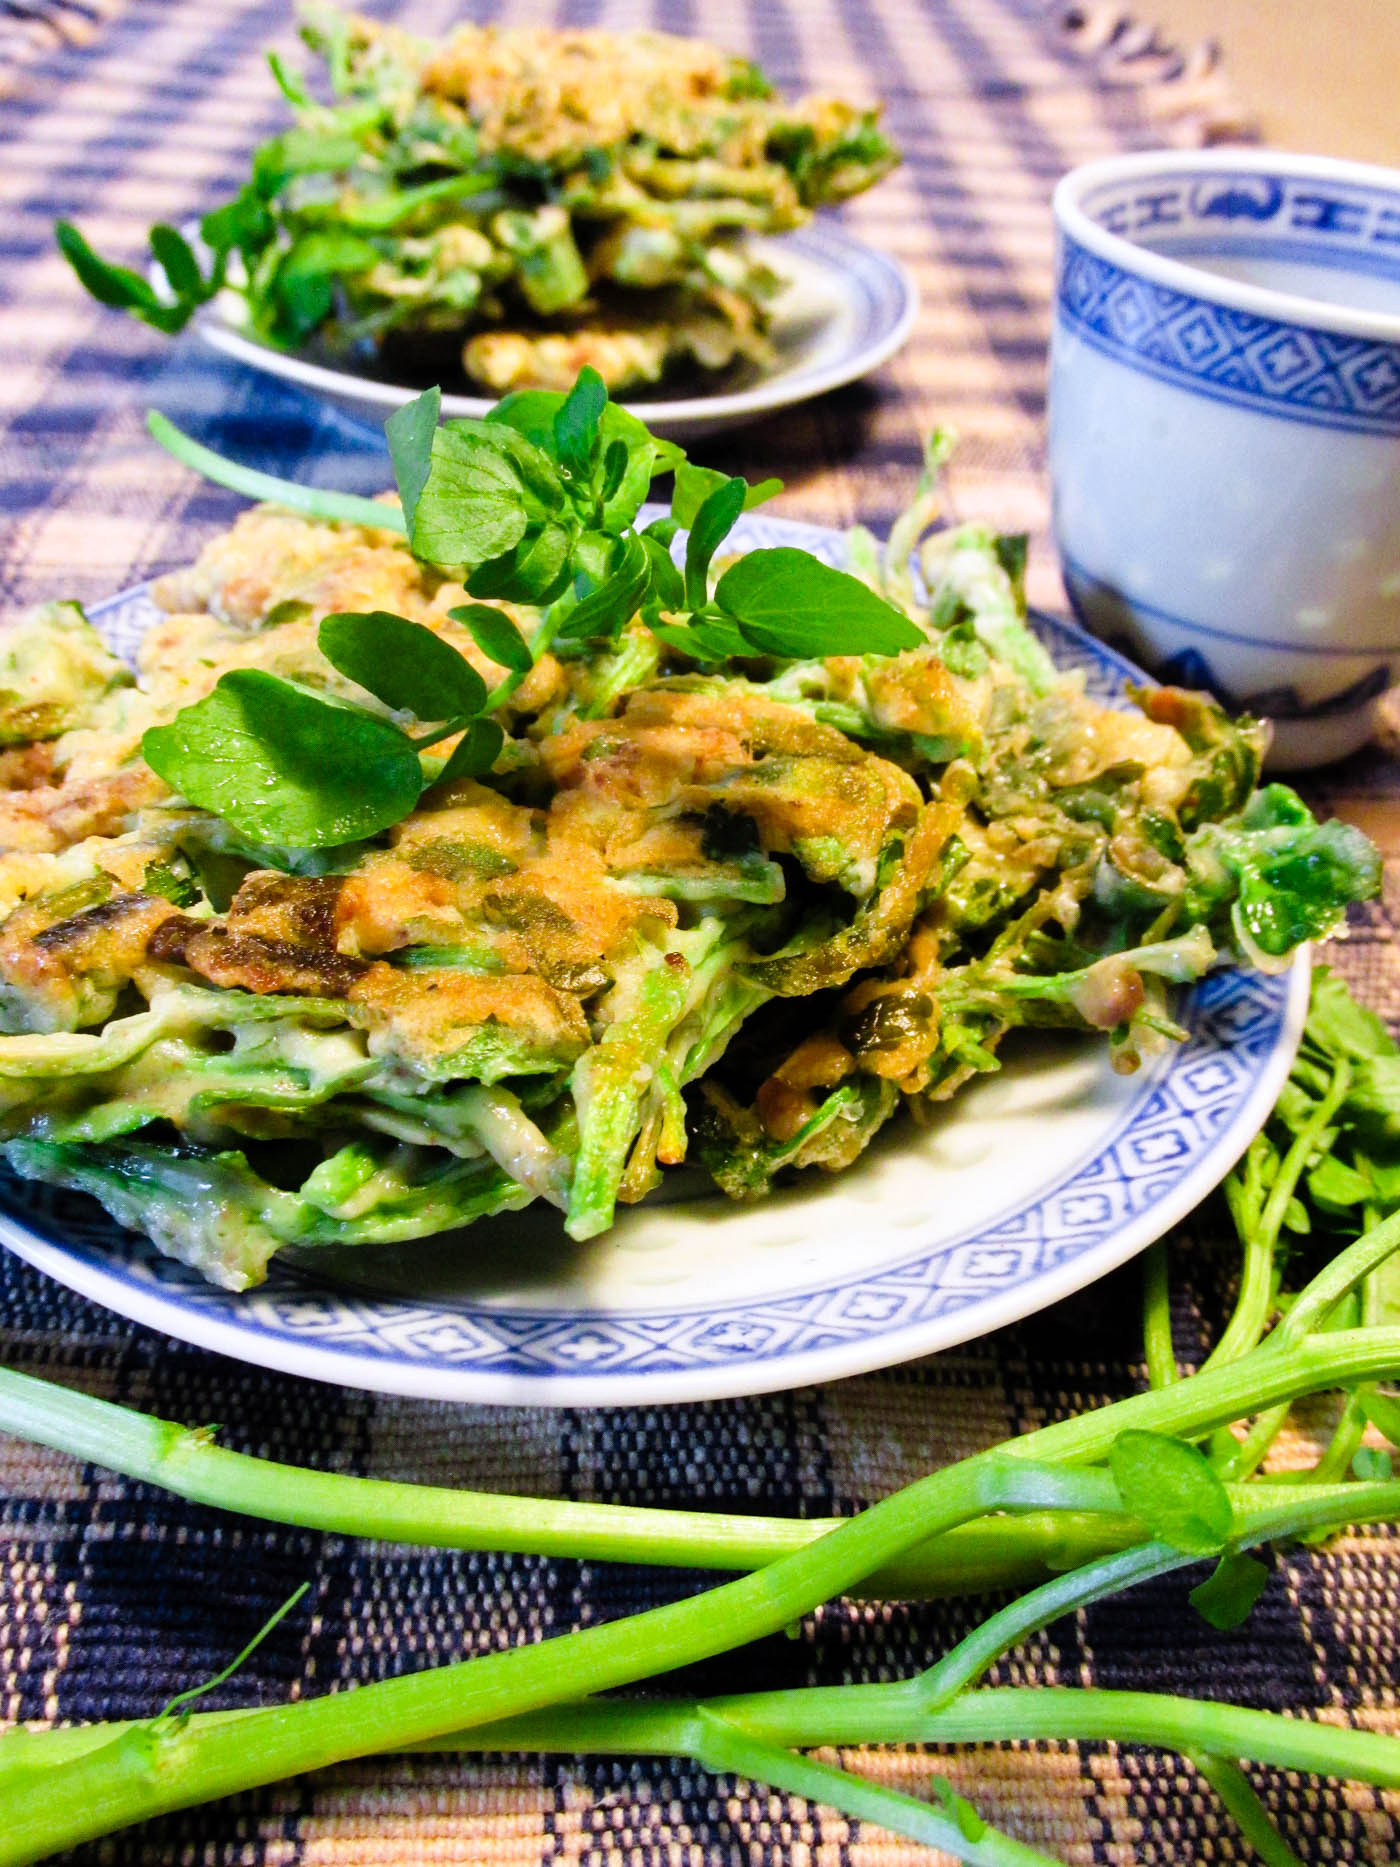 Watercress Dinner Pancakes Recipe - Kid-approved way to get greens and protein! Dairy-free, gluten-free optional